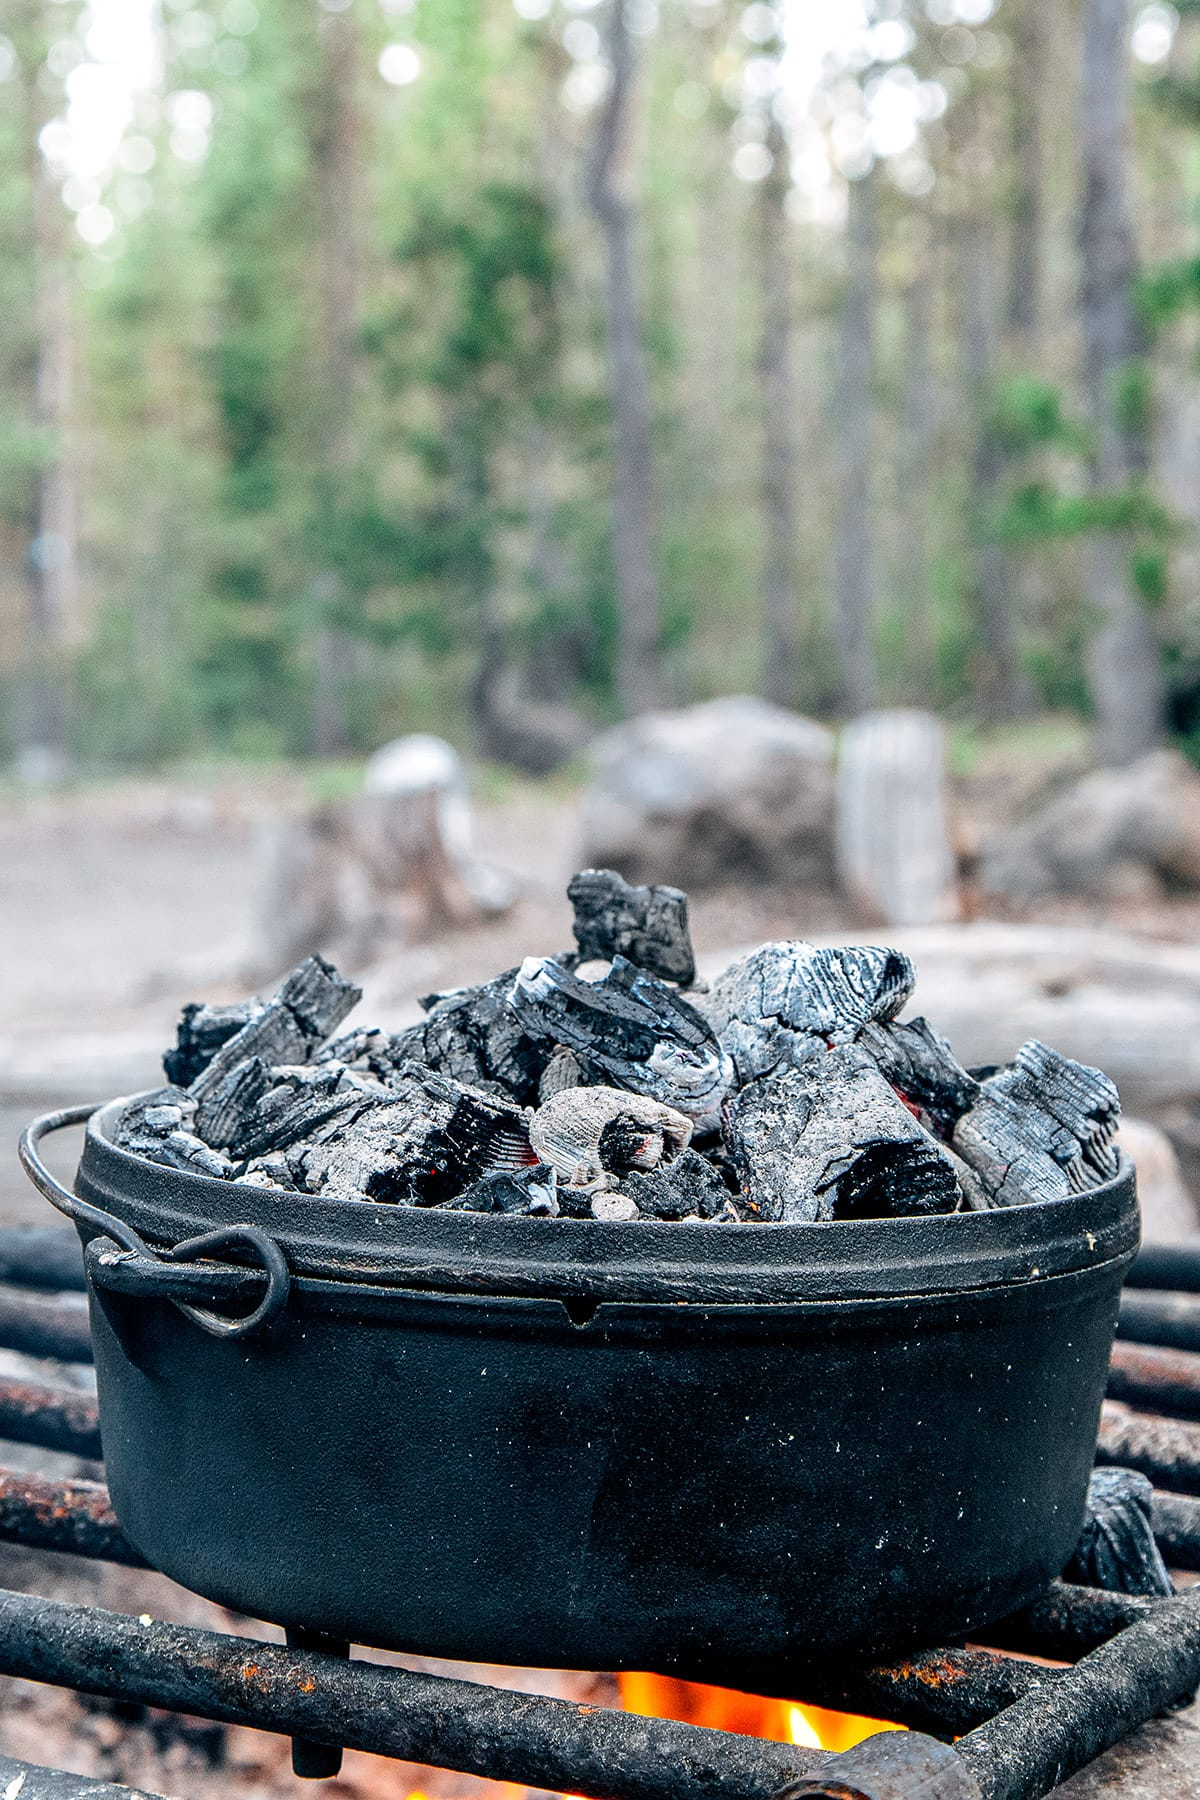 A Dutch oven over a campfire with coals on the lid and pine trees in the background